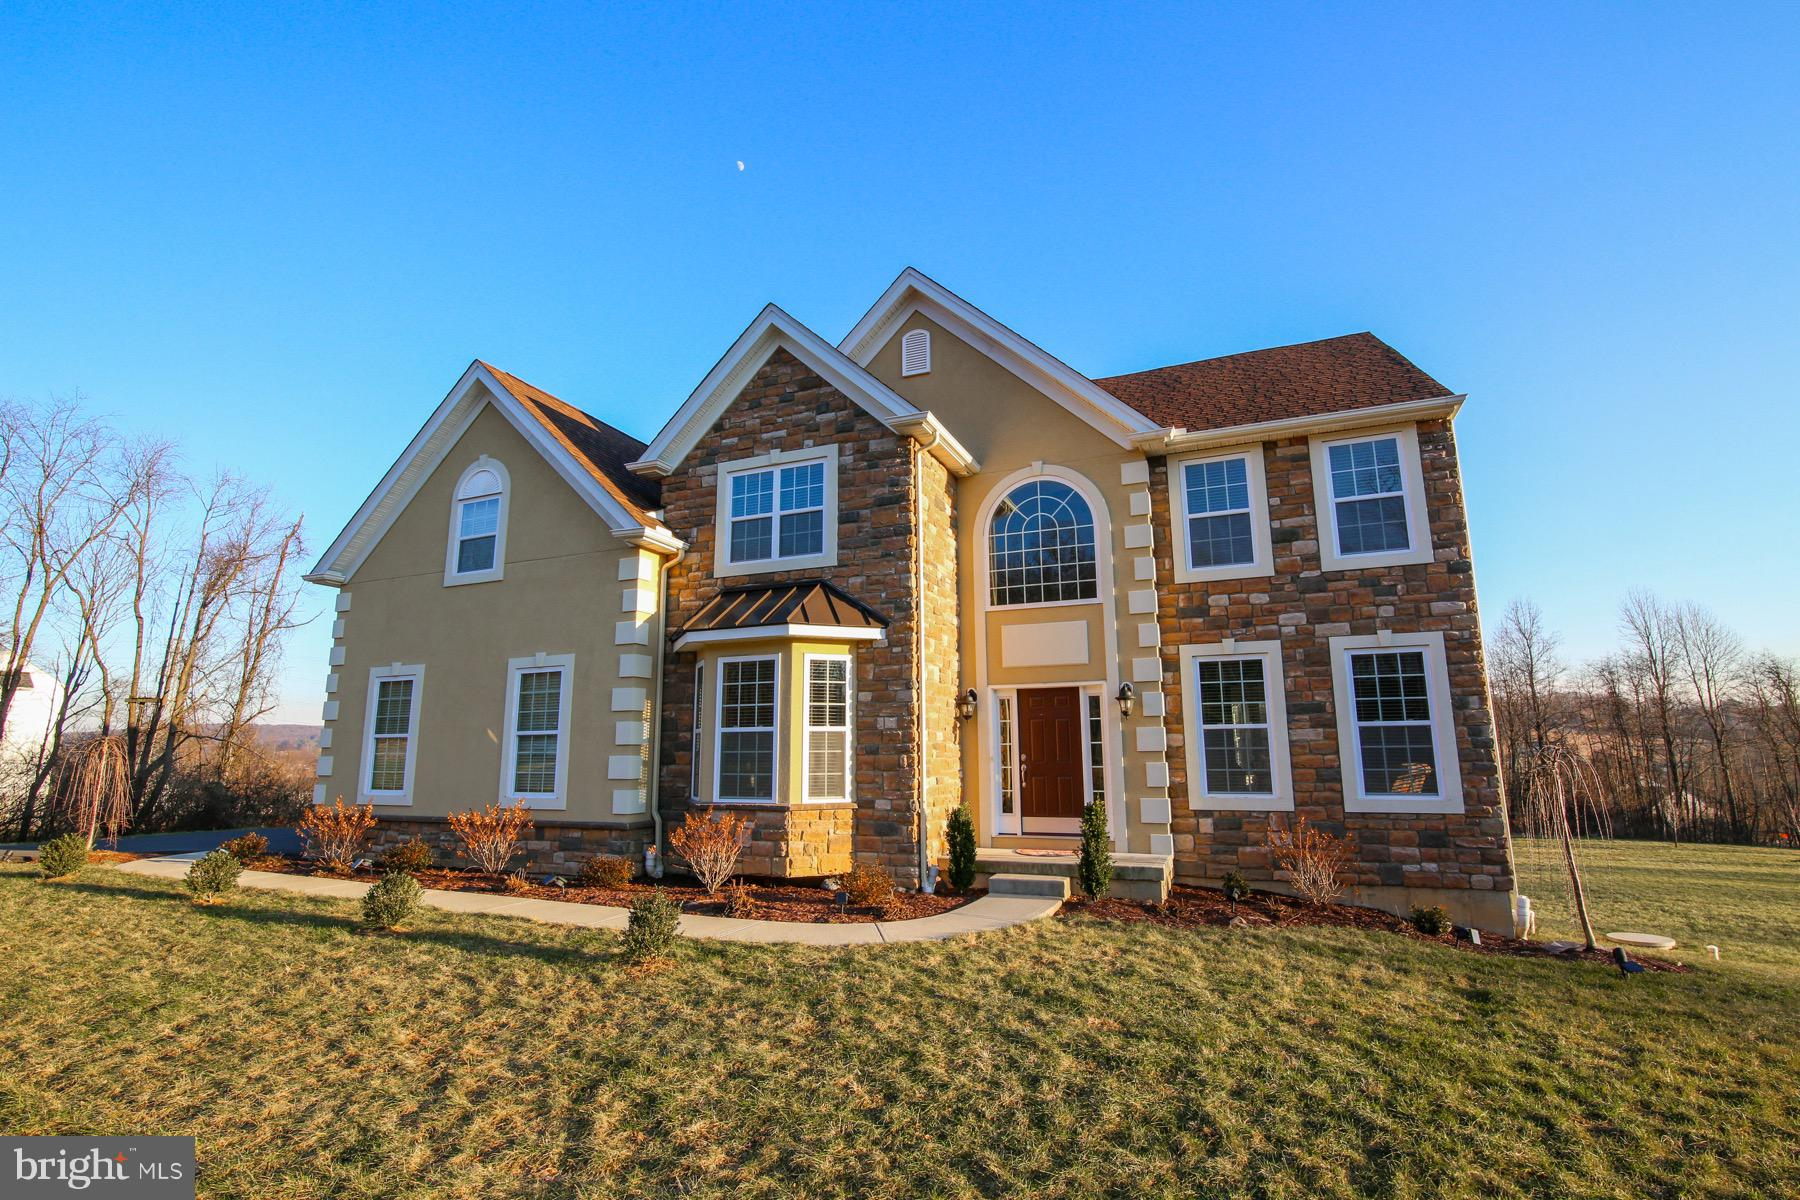 6255 SHADY DRIVE, COOPERSBURG, PA 18036